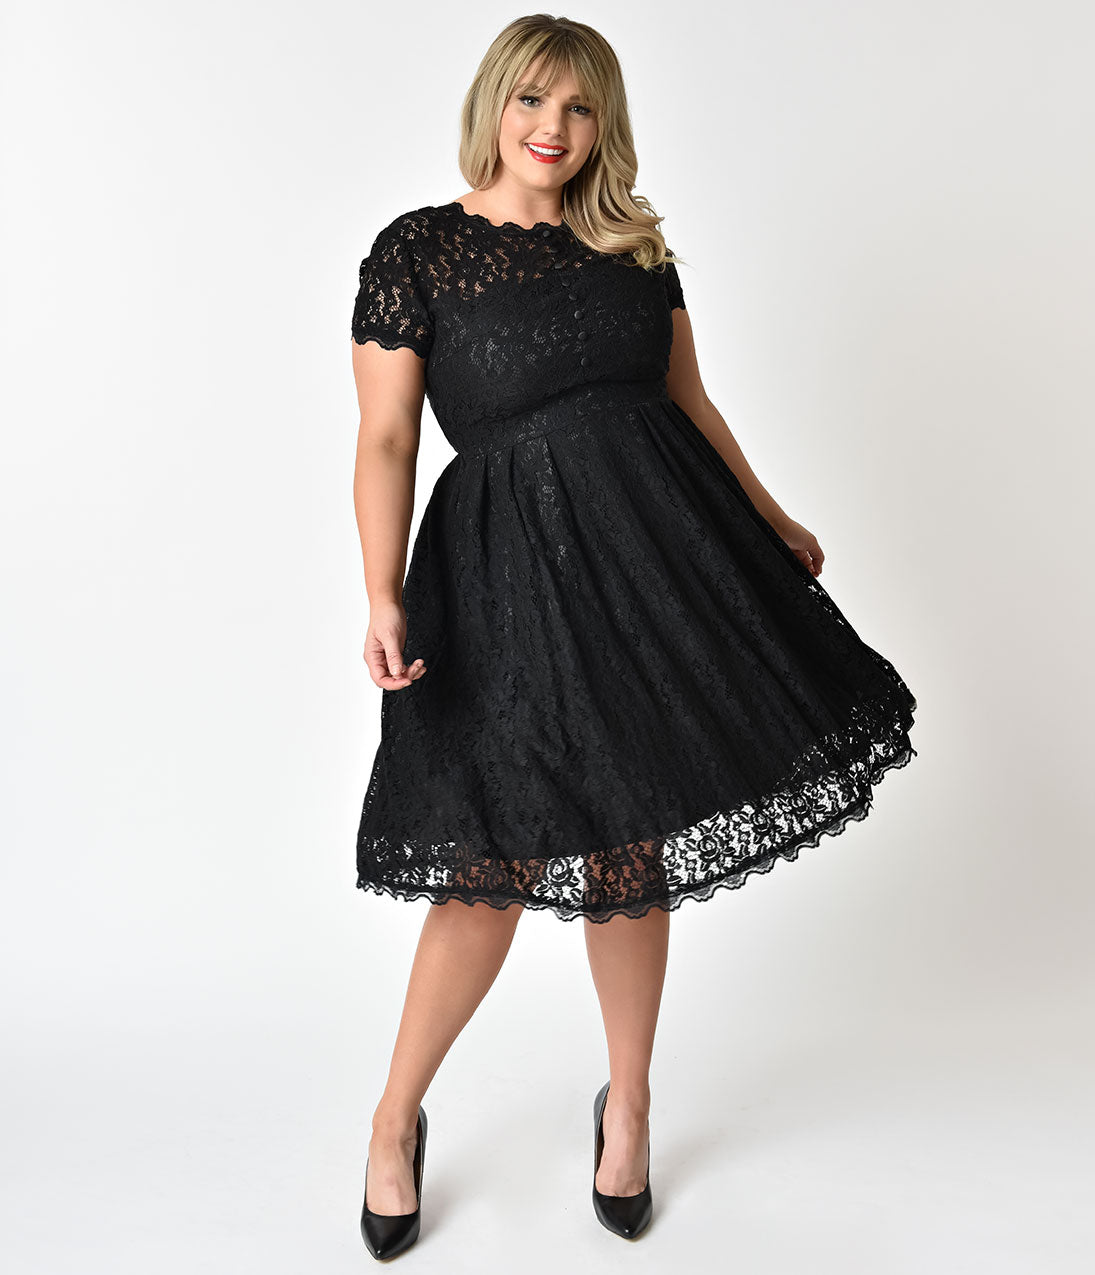 1940s Style Black Lace Short Sleeves Cocktail Swing Dress – Unique ...